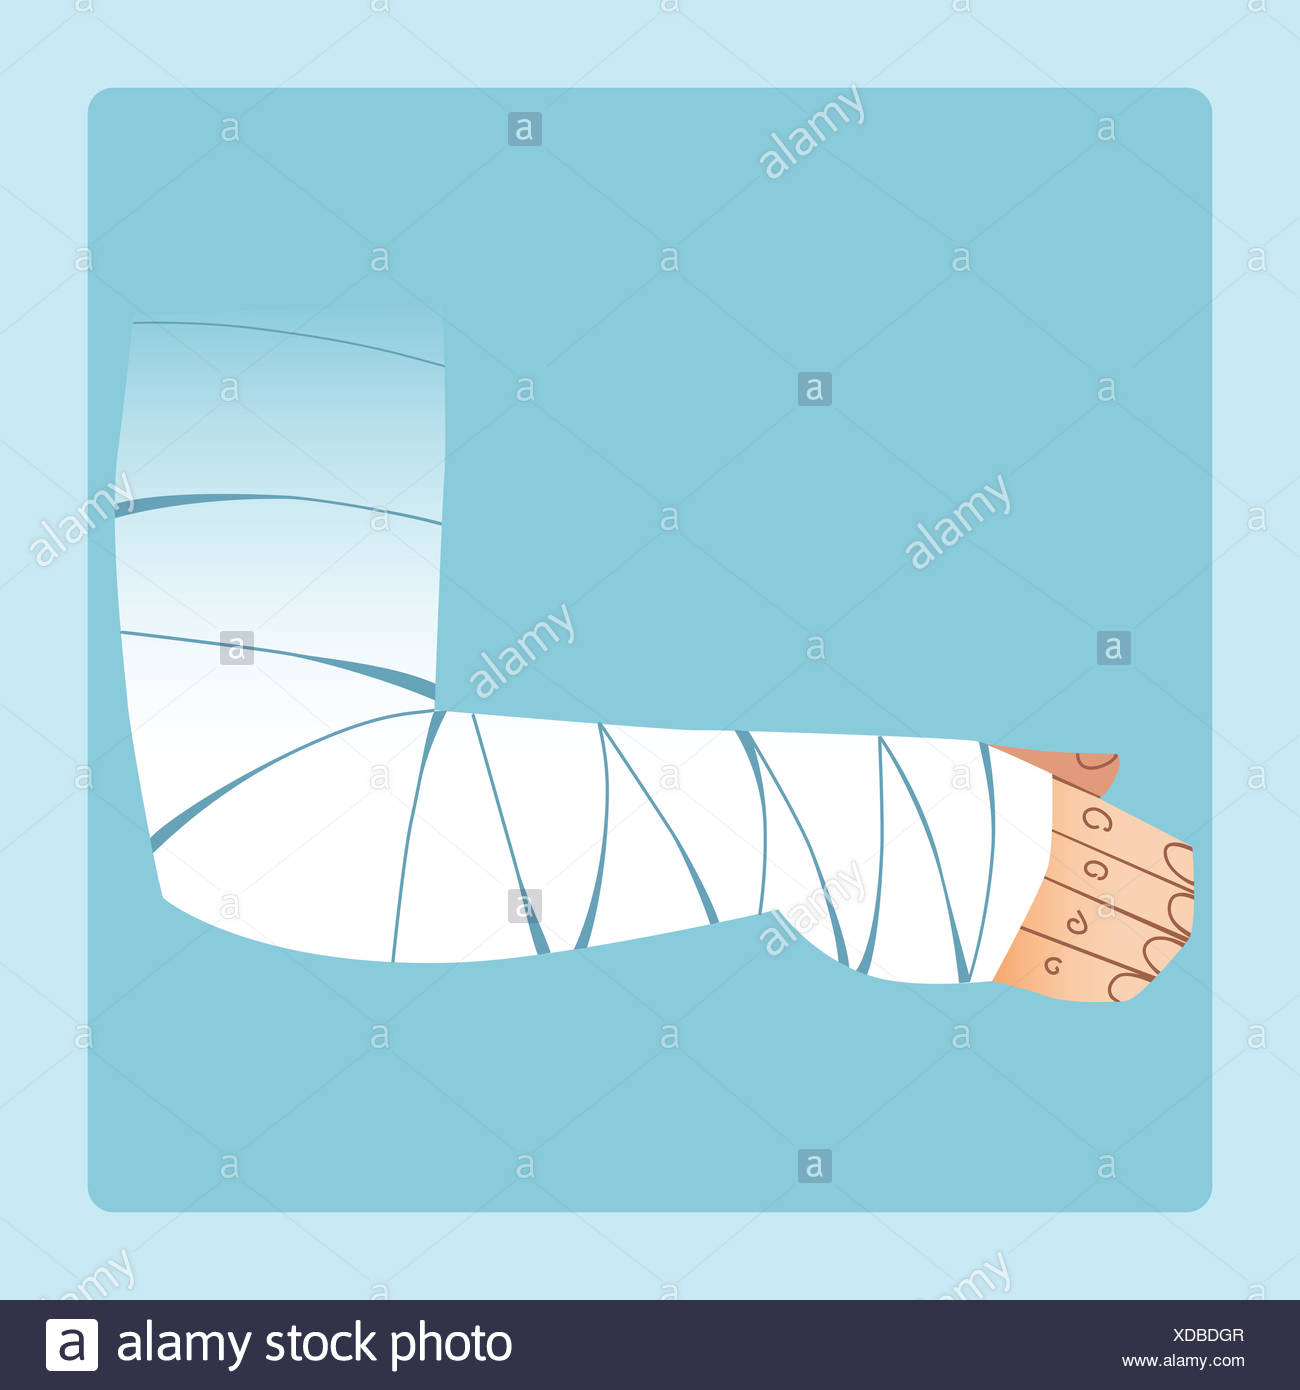 Bandaged hand after fracture or injury - Stock Image